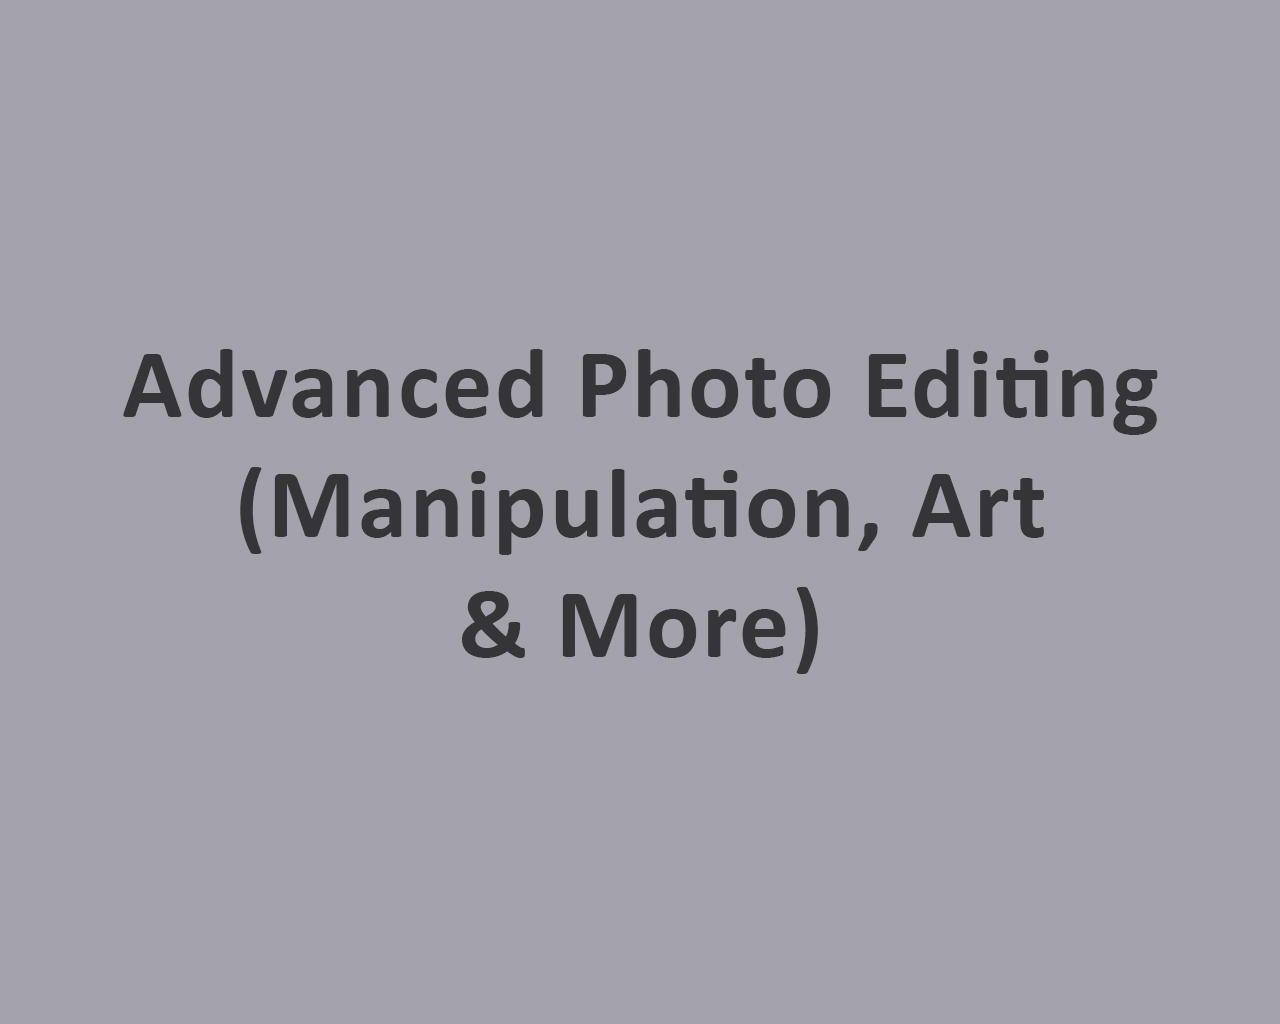 Advanced Photo Editing (Manipulation, Art & More) by odiusfly - 105977